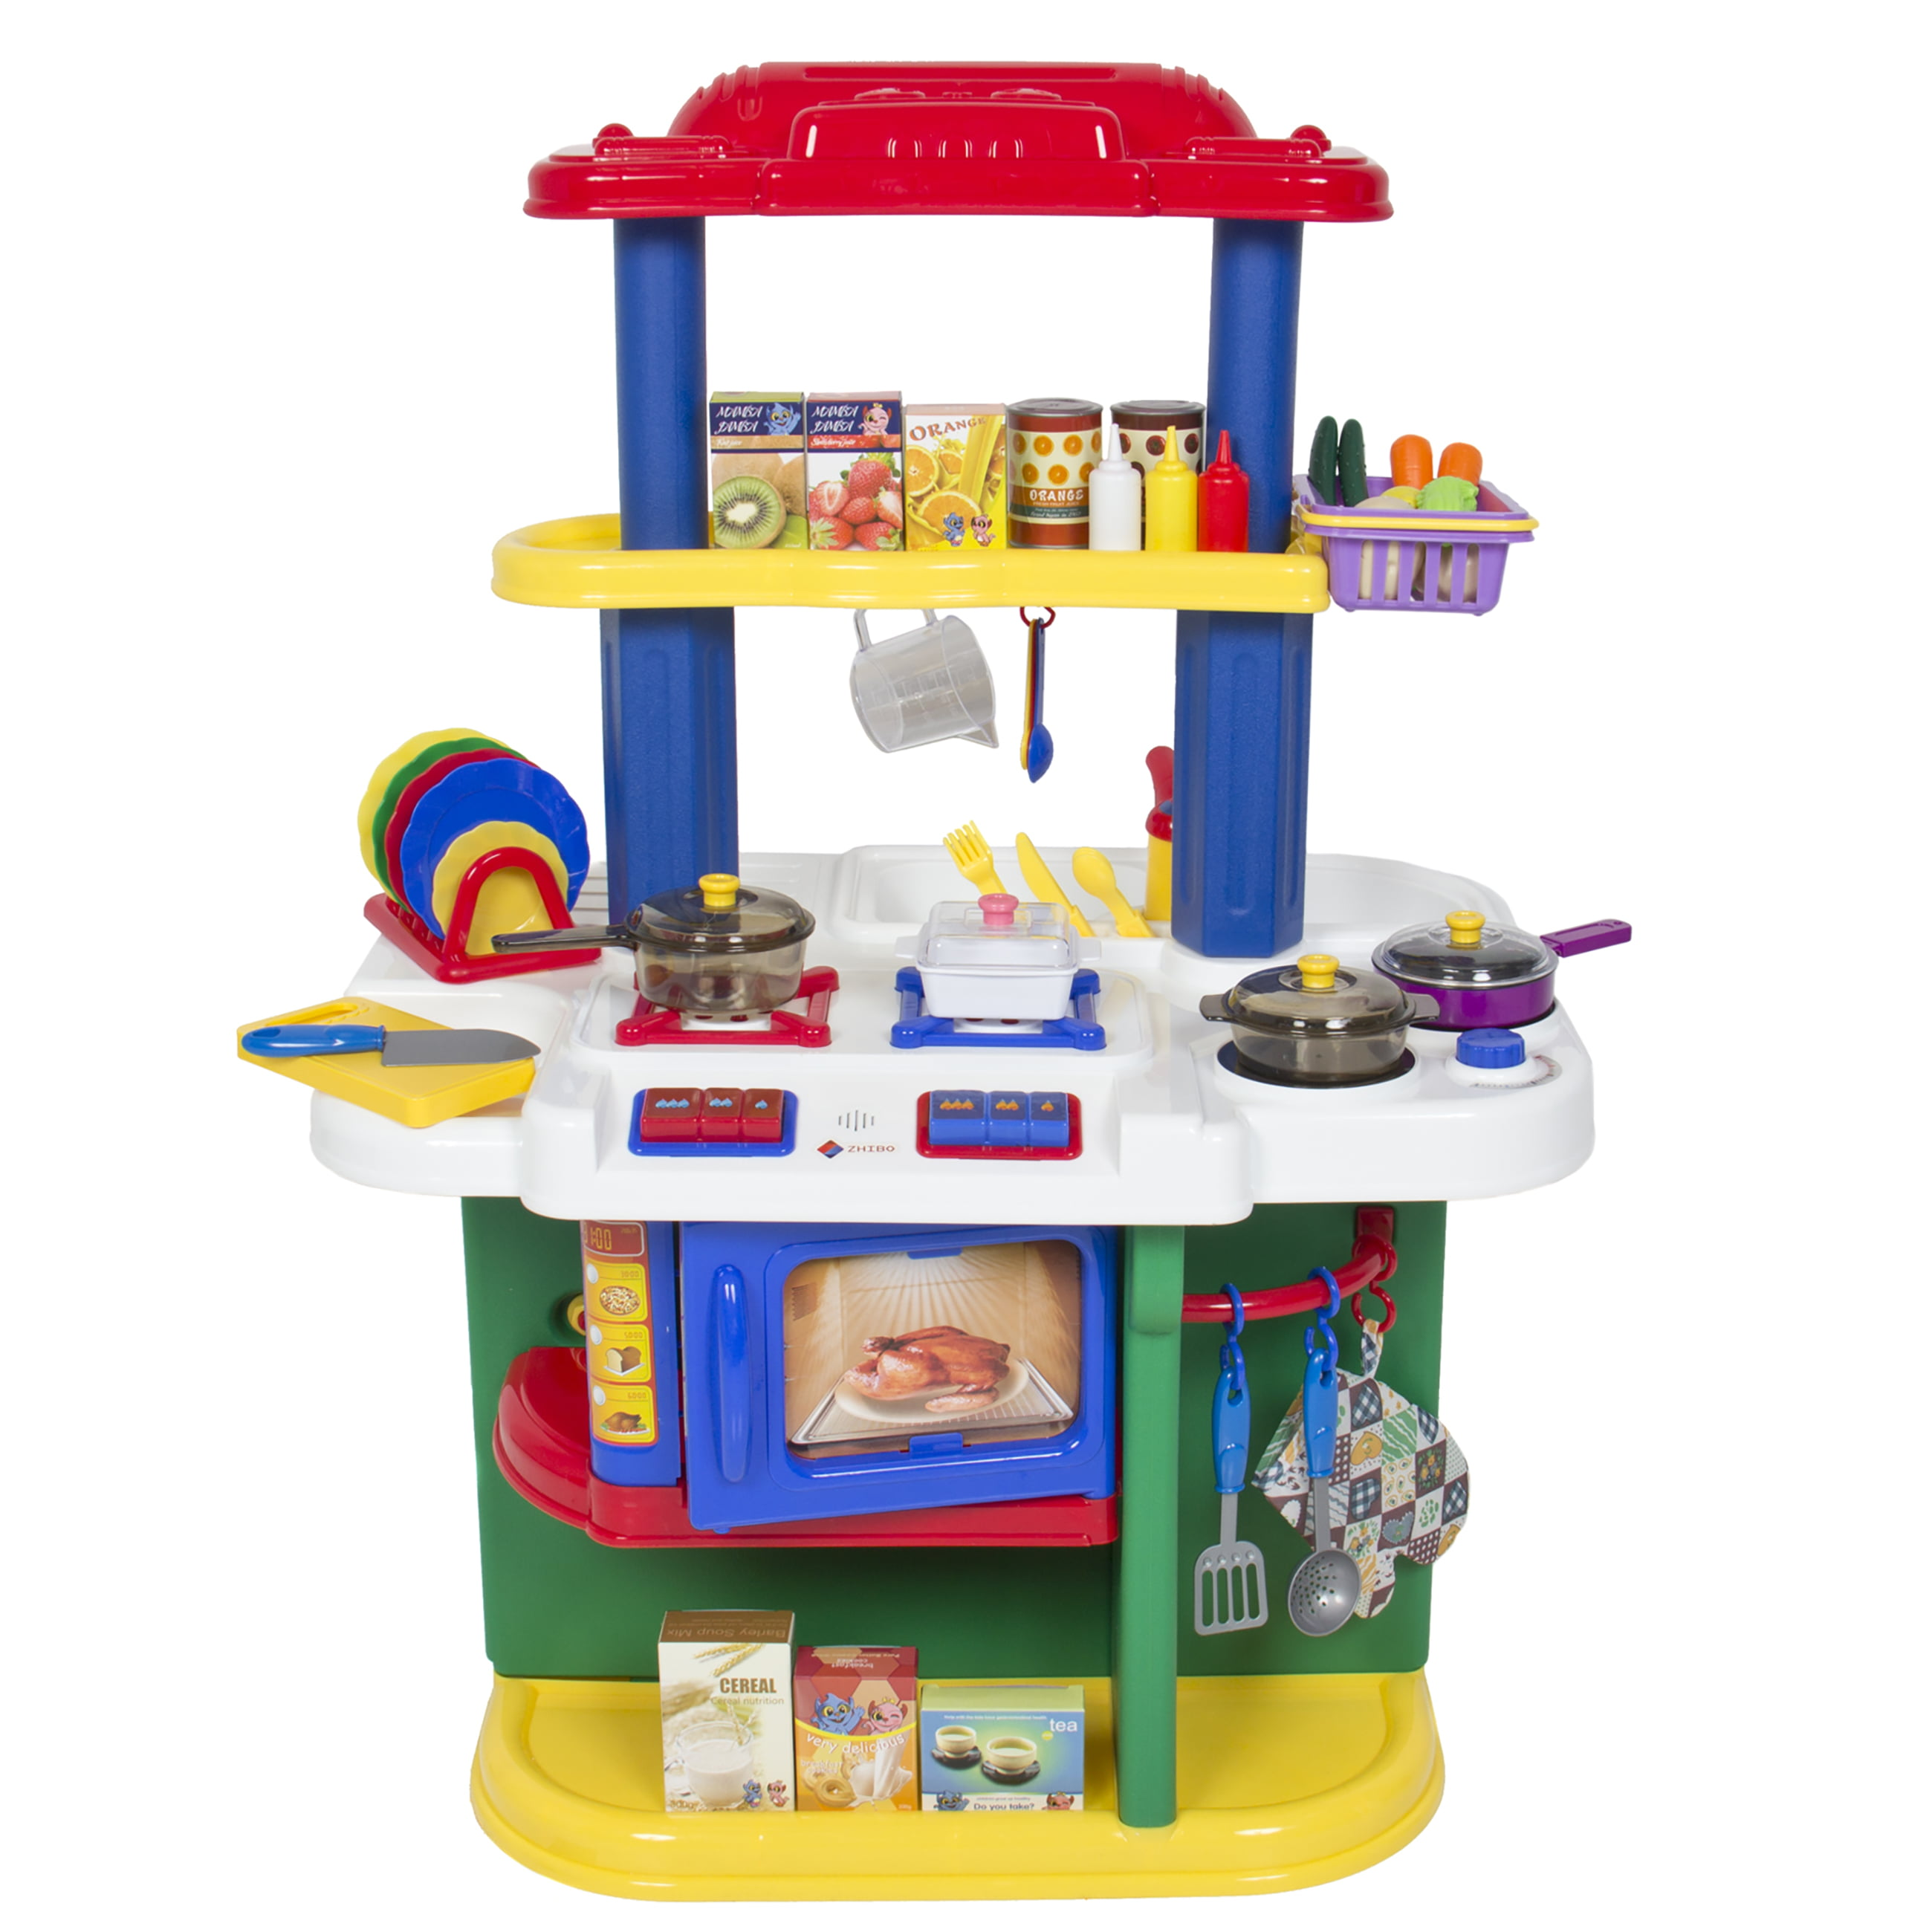 Deluxe children kitchen cooking pretend play set with accessories walmart com